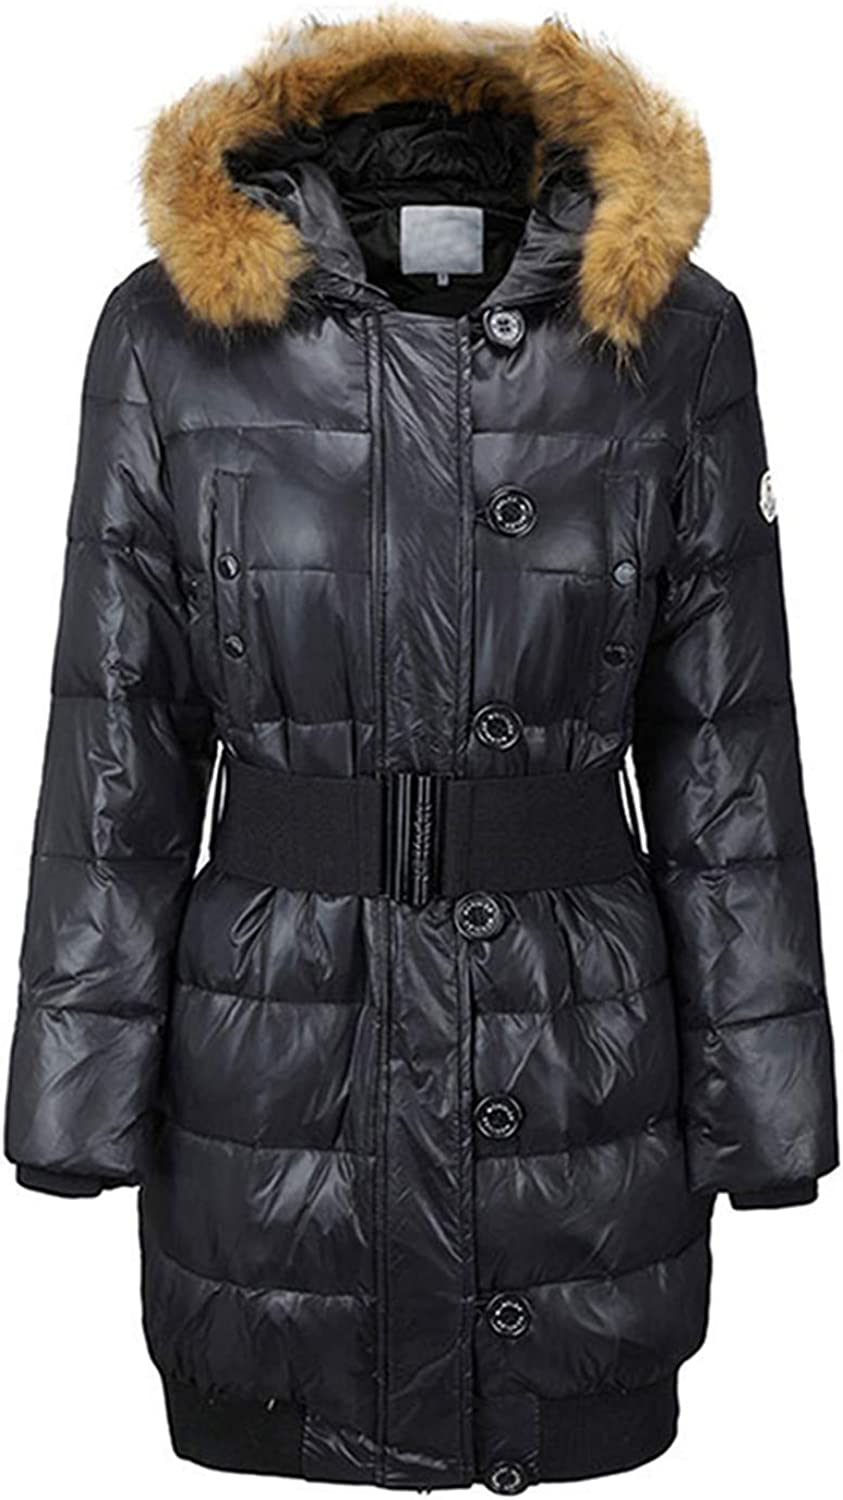 Cheryl Bull Trendy Women Winter Warm Cotton Clothes Slim Casual Zipper Down Jacket Girls Popular Black Outwear Female Parkas